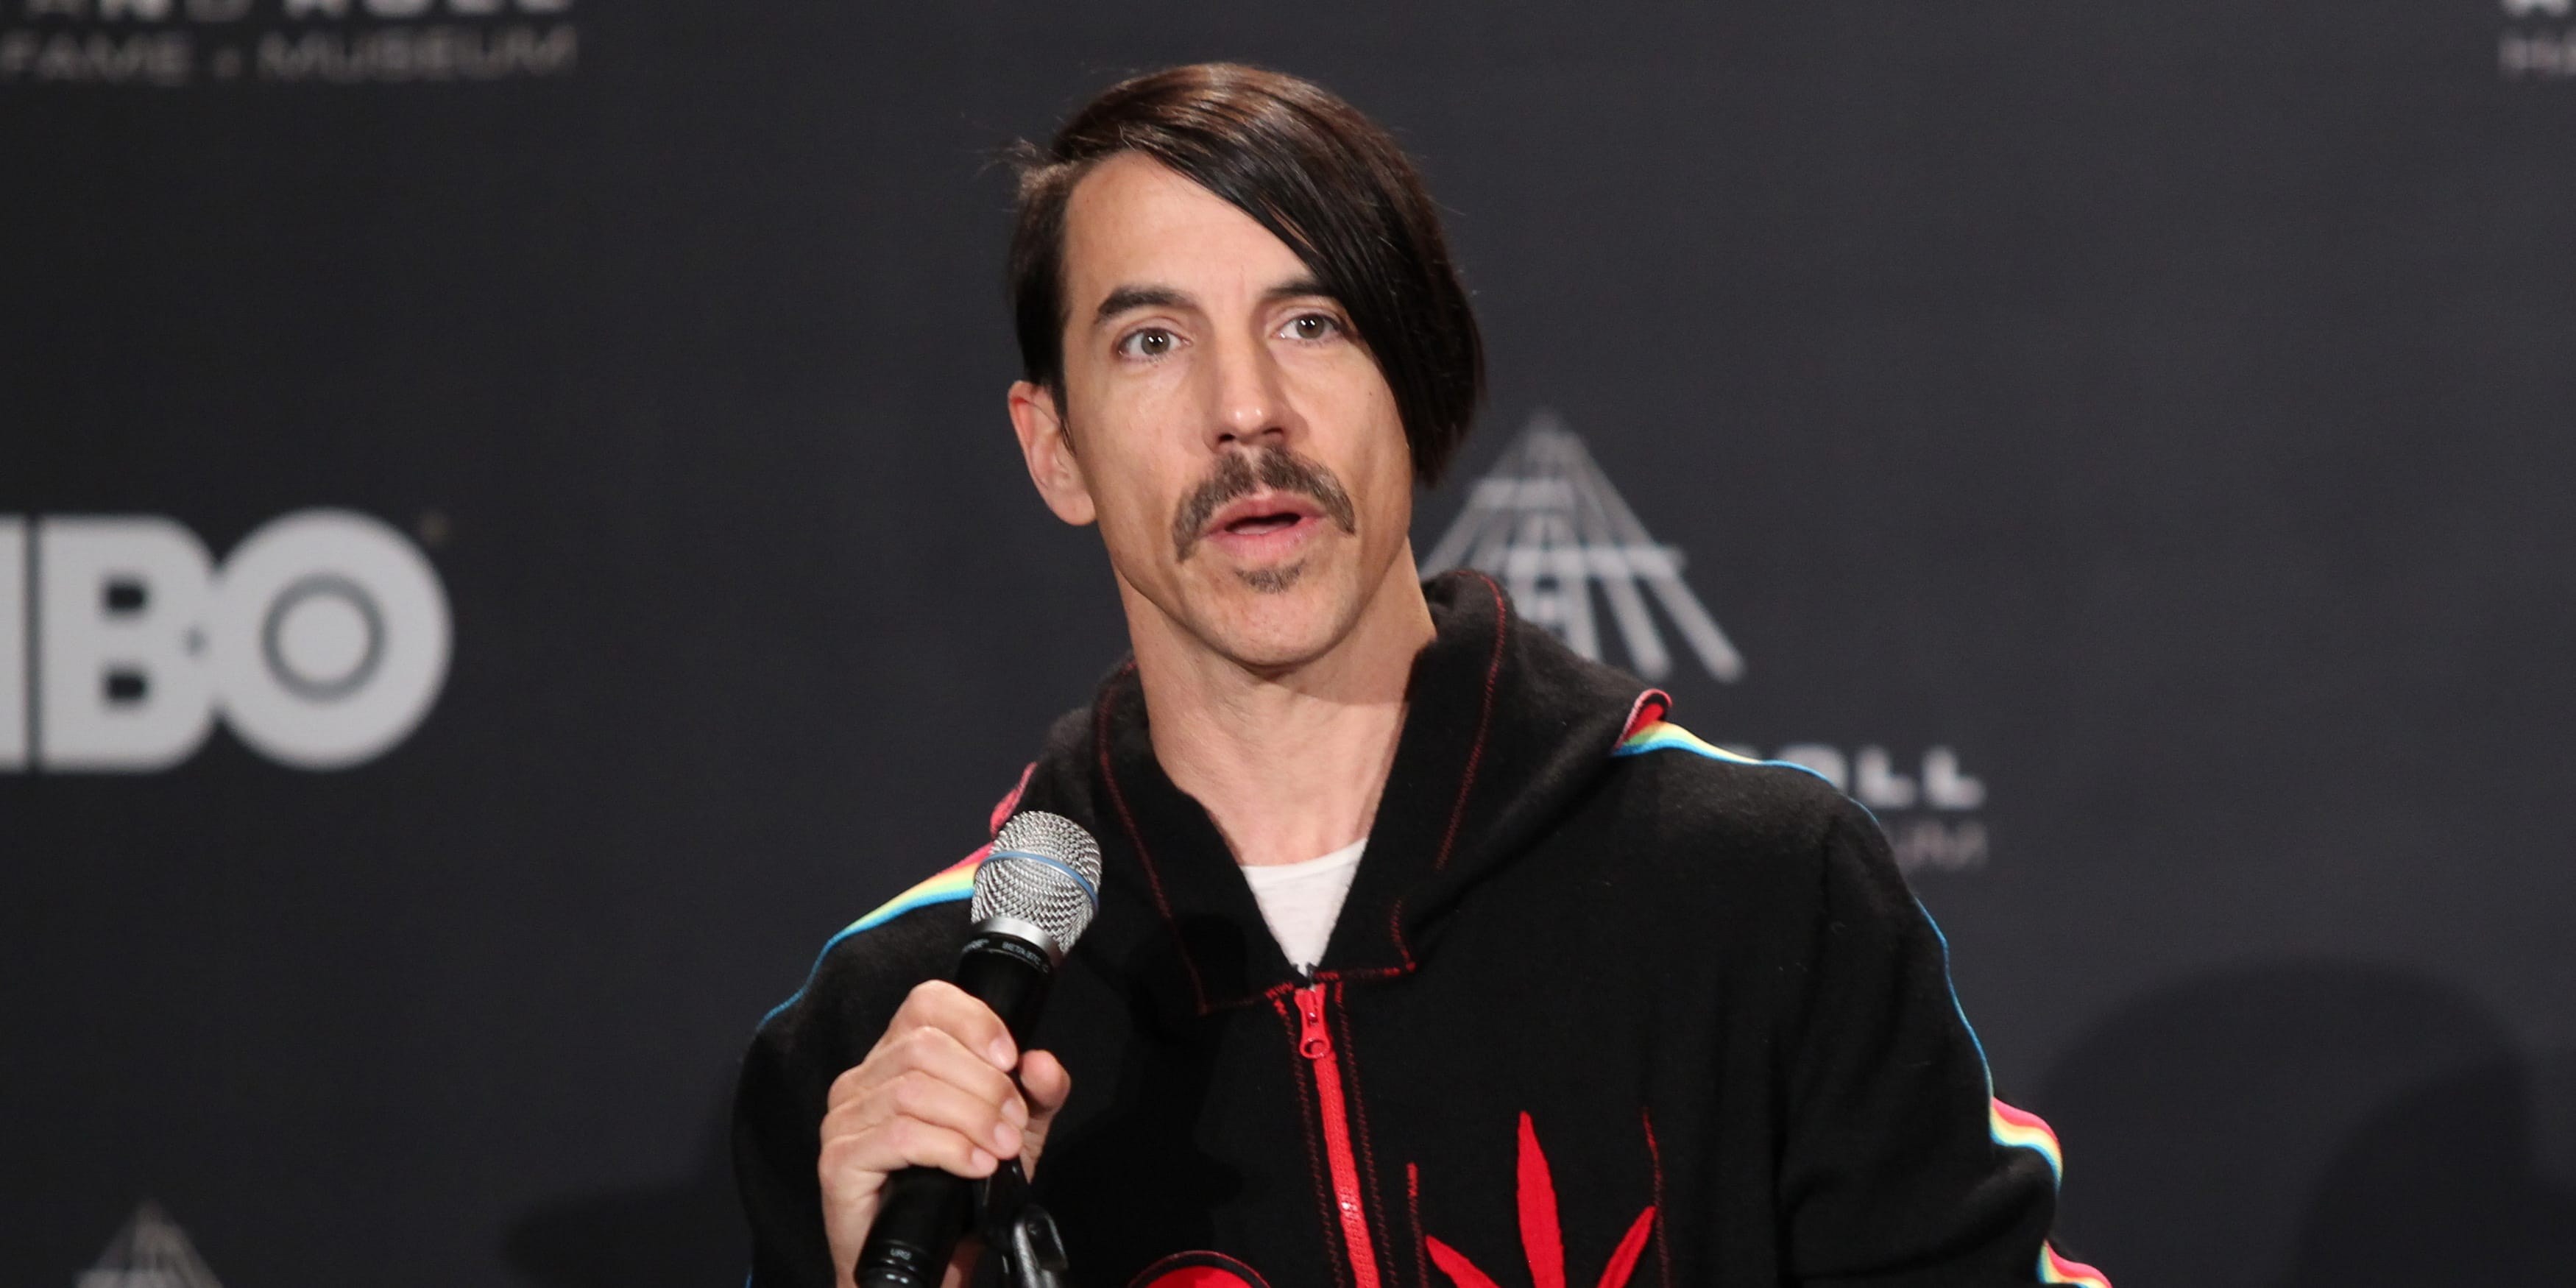 Anthony Kiedis Net Worth - Celebrity Net Worth